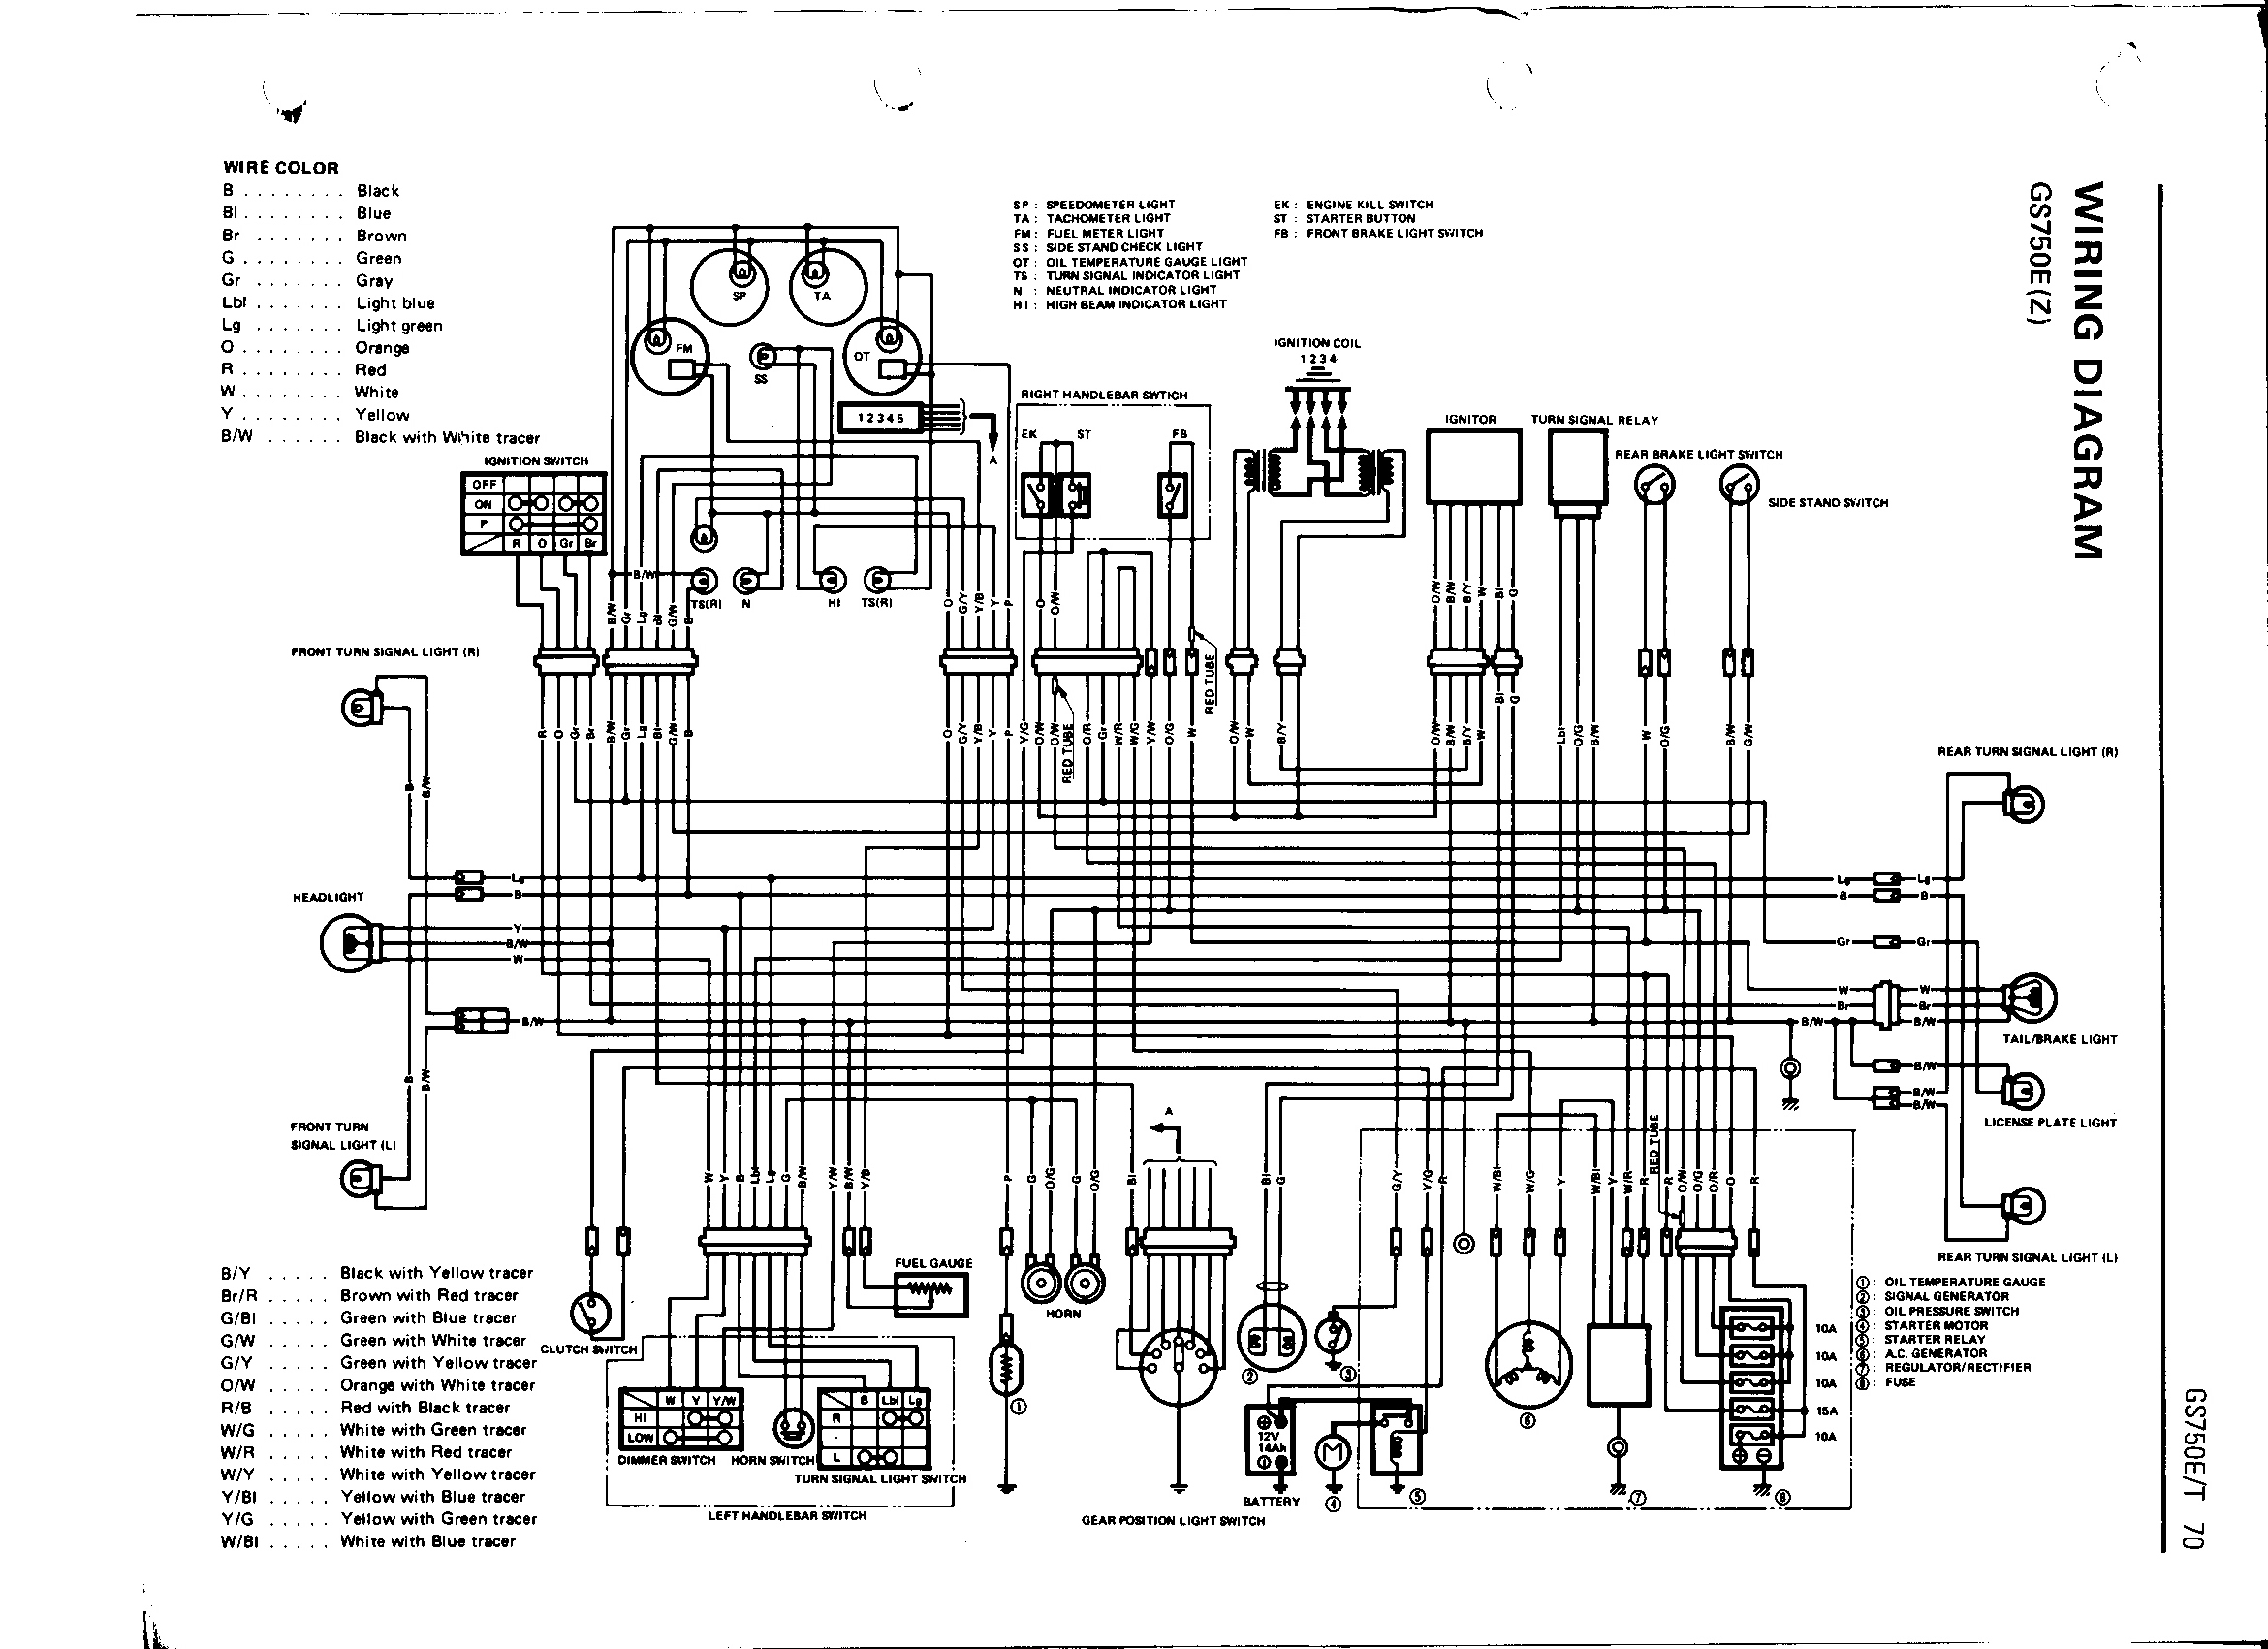 Wrg 80 Suzuki Gs 850 Wiring Diagram